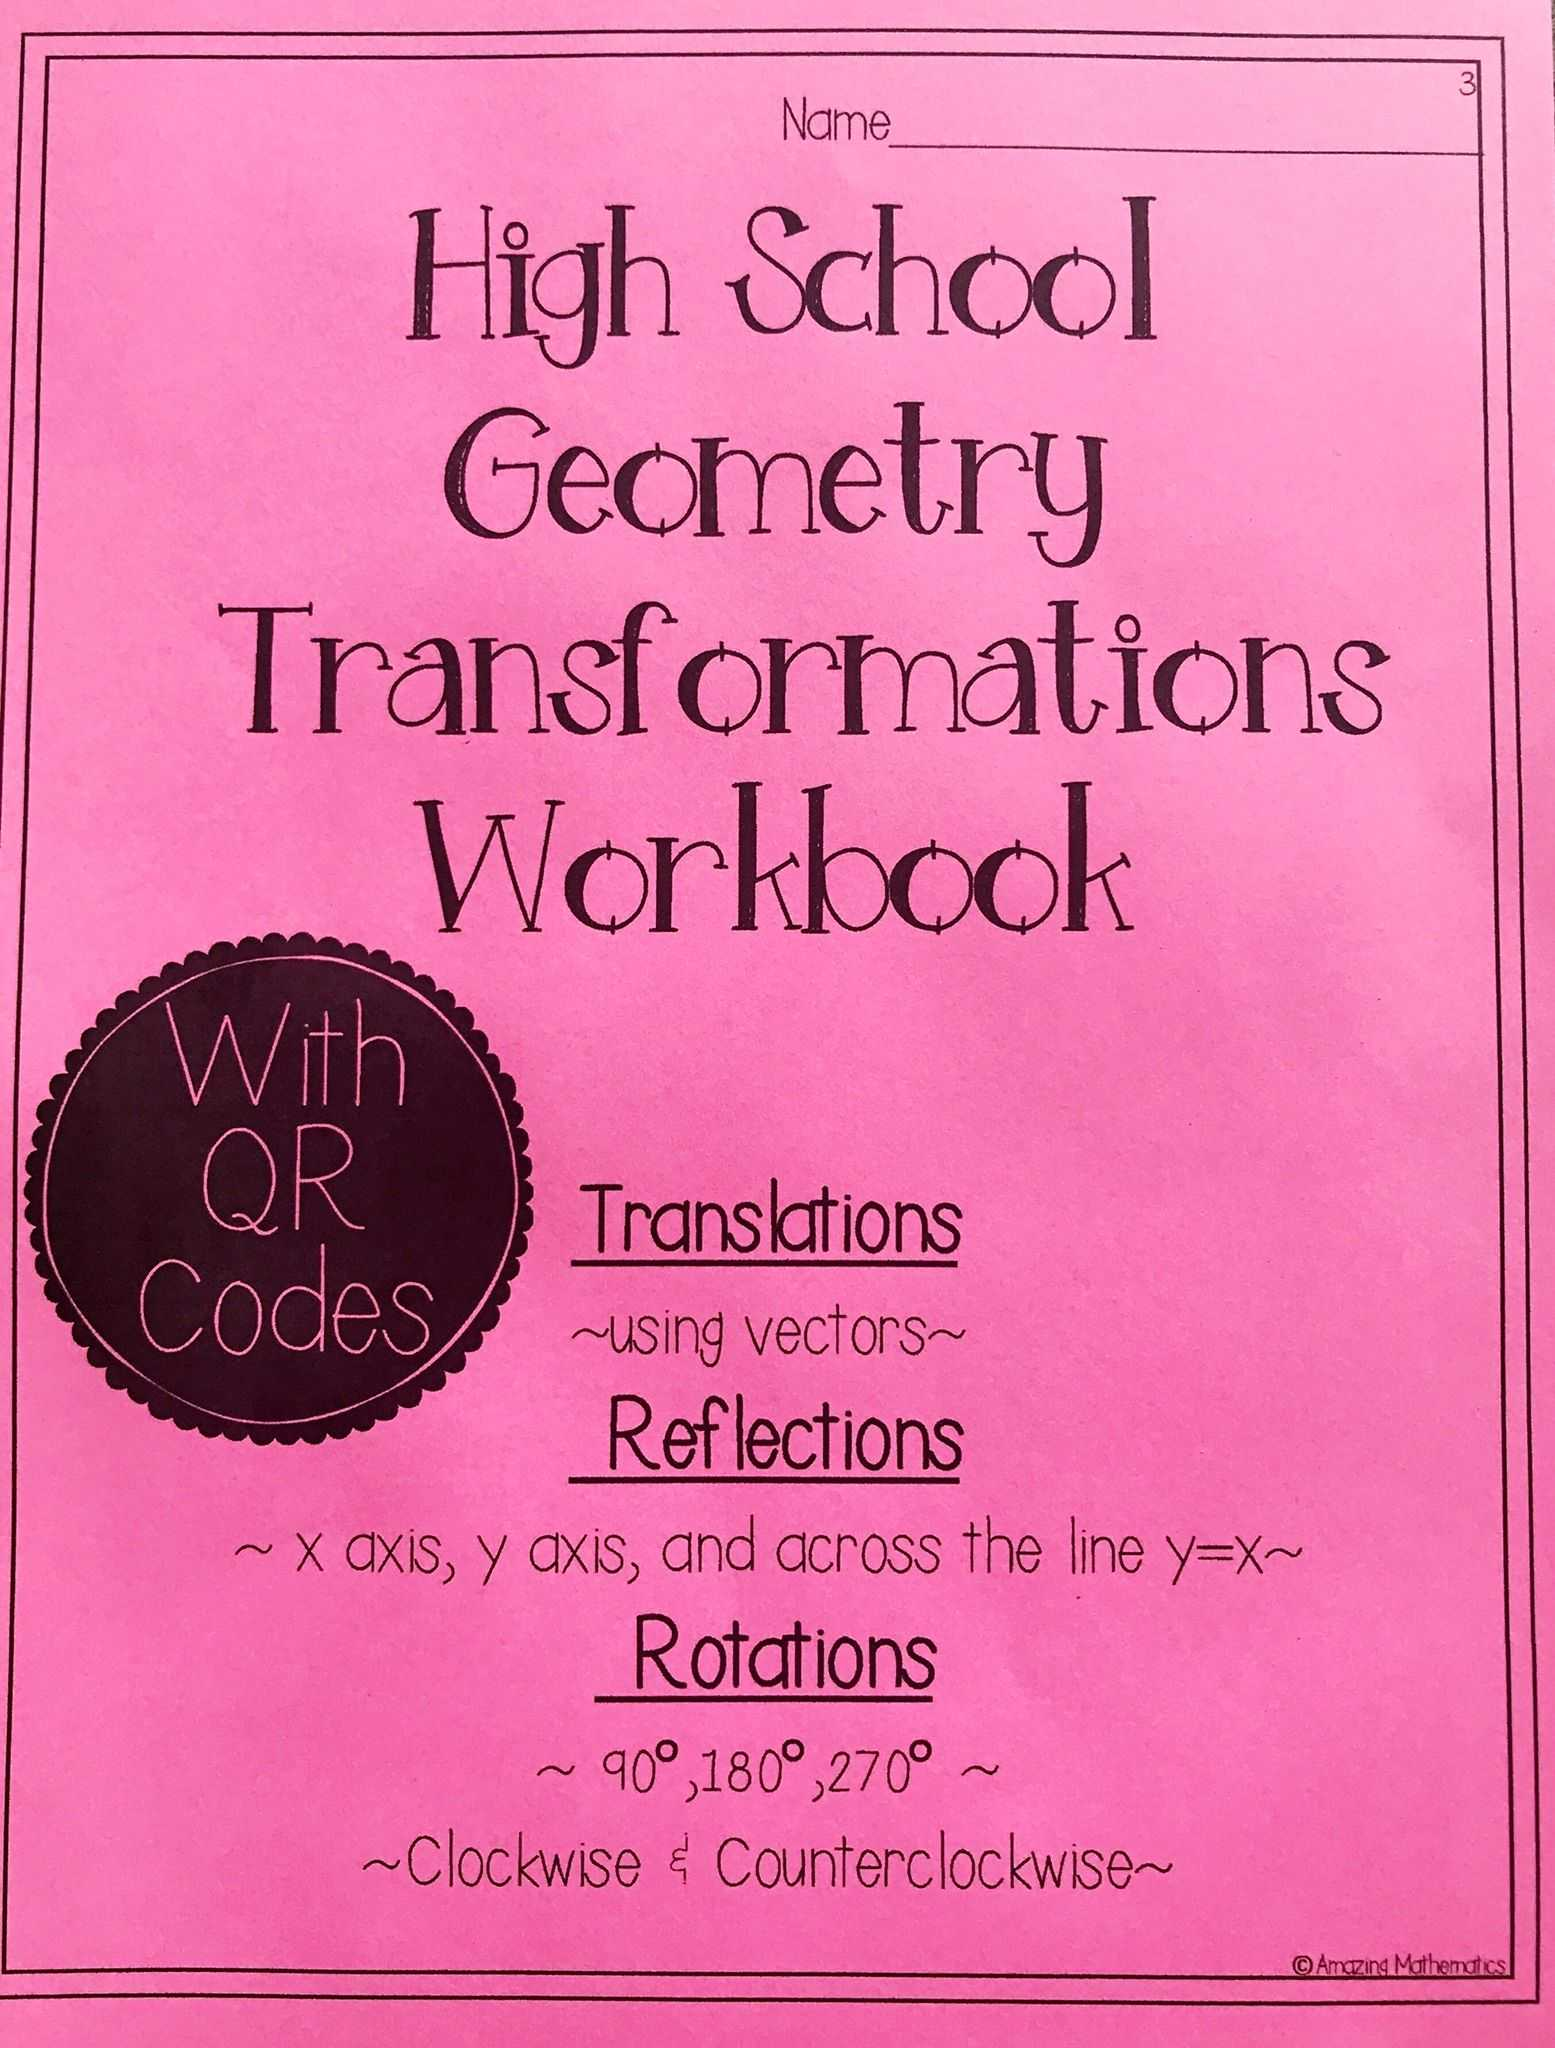 Translation Practice Worksheet Along with Hs Geometry Transformations Workbook Translations Rotations